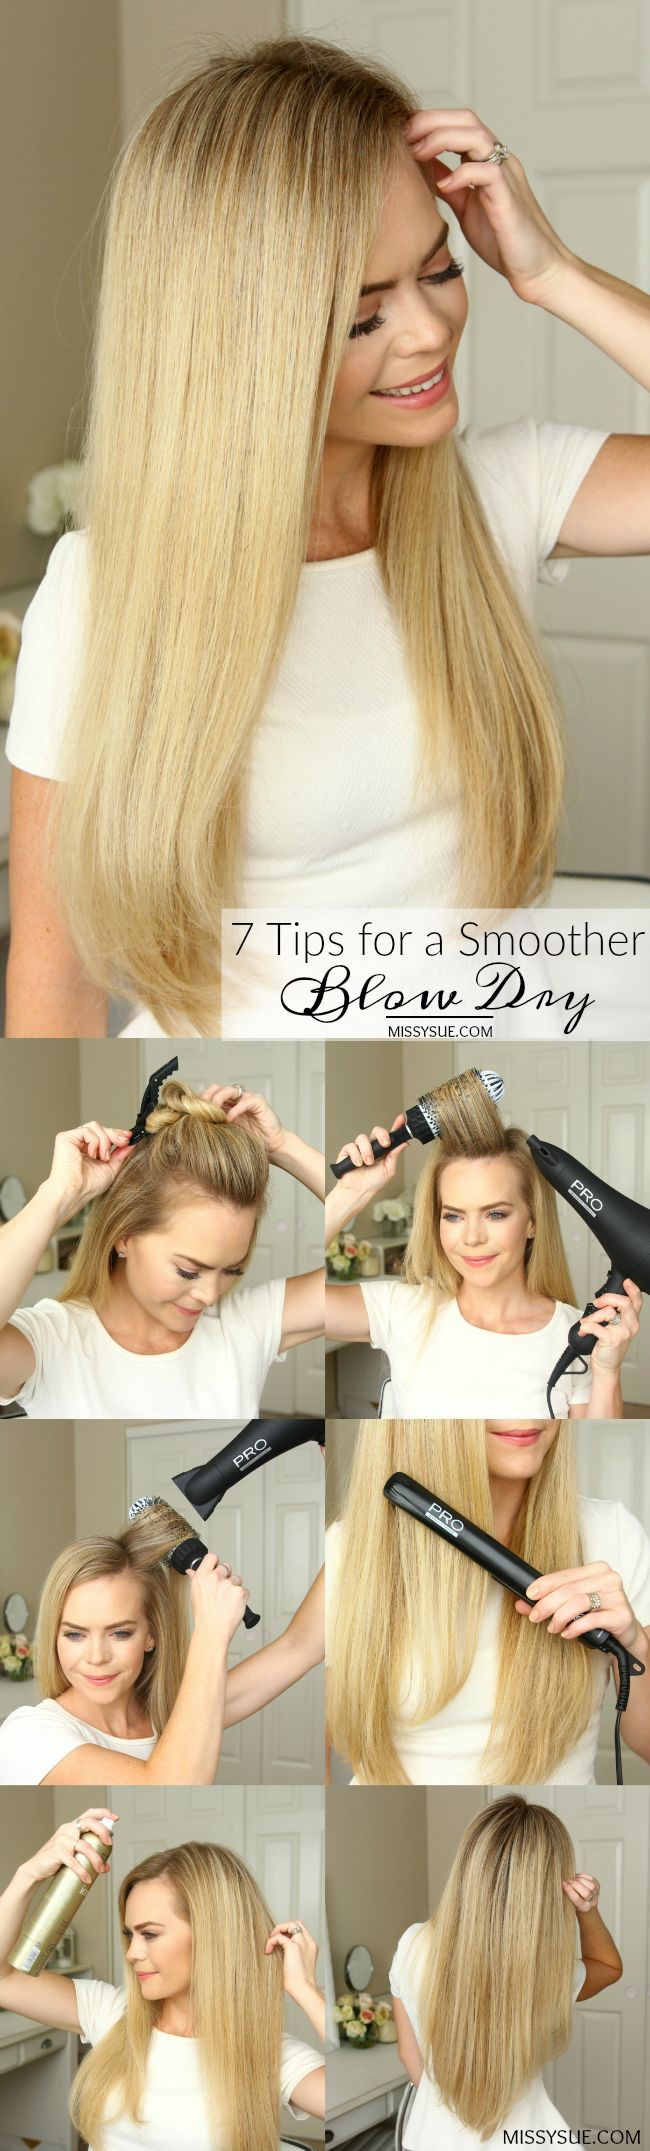 easy-tips-smooth-blow-dry-hair-tutorial